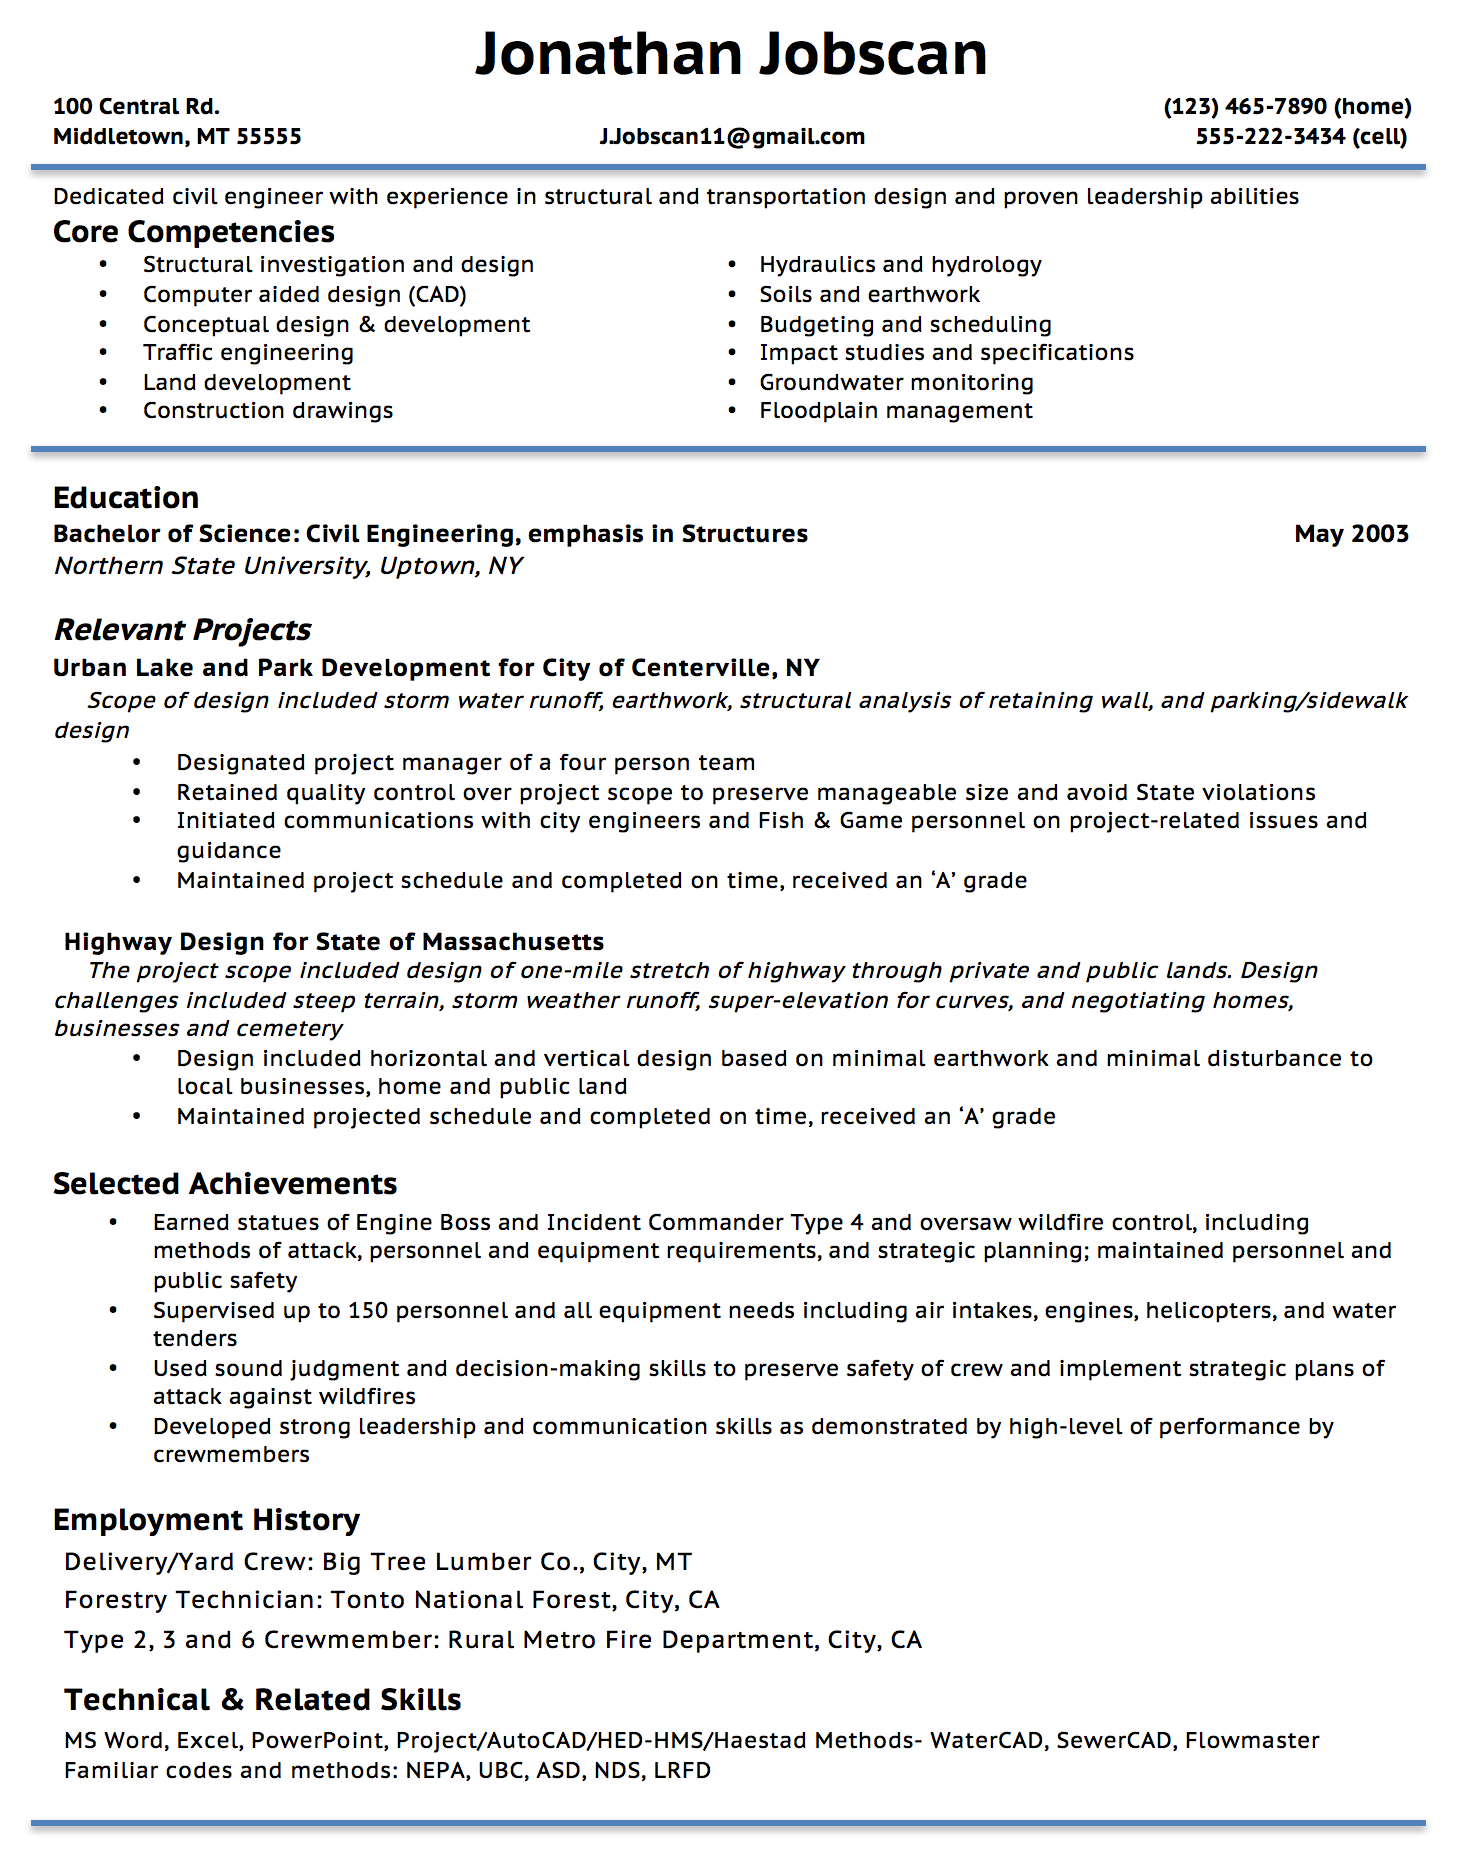 Opposenewapstandardsus  Splendid Resume Writing Guide  Jobscan With Fair Example Of A Functional Resume Format With Extraordinary What Is A Functional Resume Also A Resume In Addition Professional Resume Writing Services And Resume Length As Well As Skills To Include On Resume Additionally Mechanic Resume From Jobscanco With Opposenewapstandardsus  Fair Resume Writing Guide  Jobscan With Extraordinary Example Of A Functional Resume Format And Splendid What Is A Functional Resume Also A Resume In Addition Professional Resume Writing Services From Jobscanco